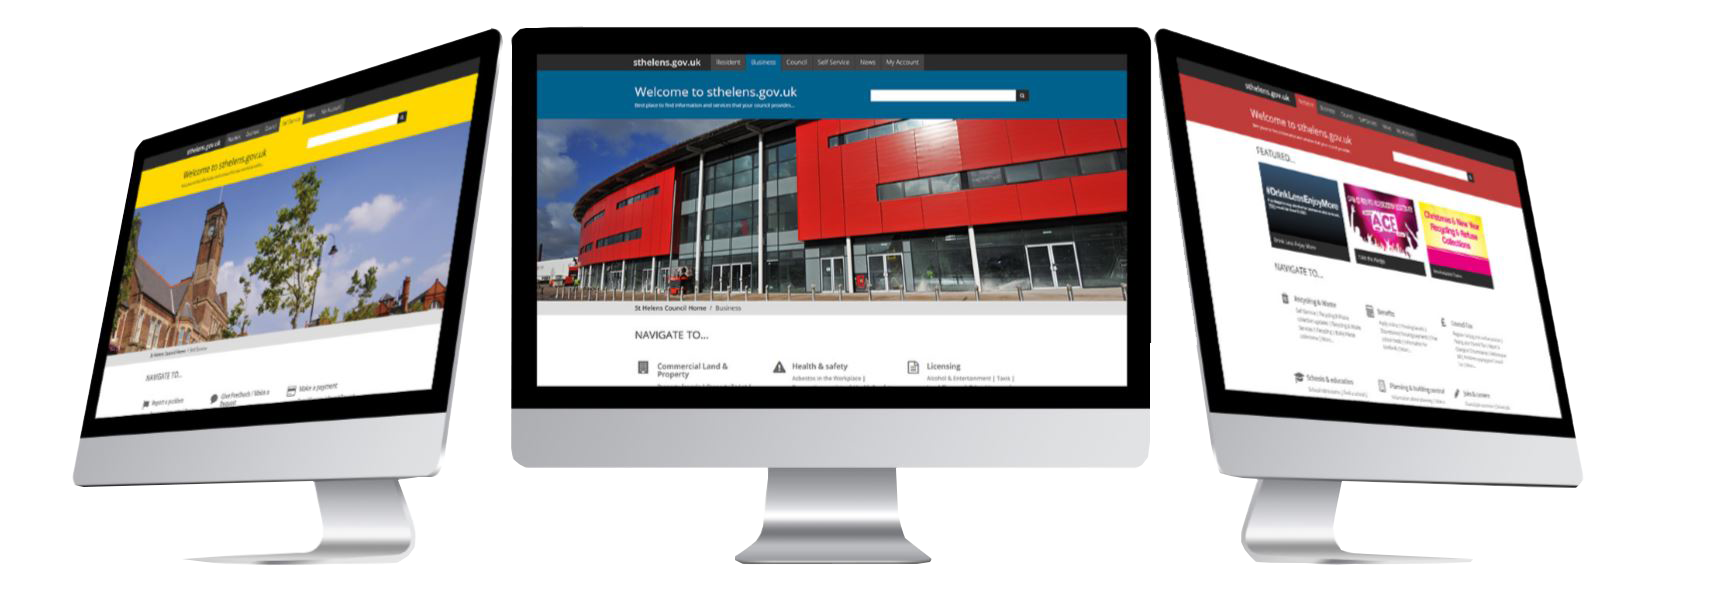 St. Helens Council - Totara Learn Site - LMS Case Study